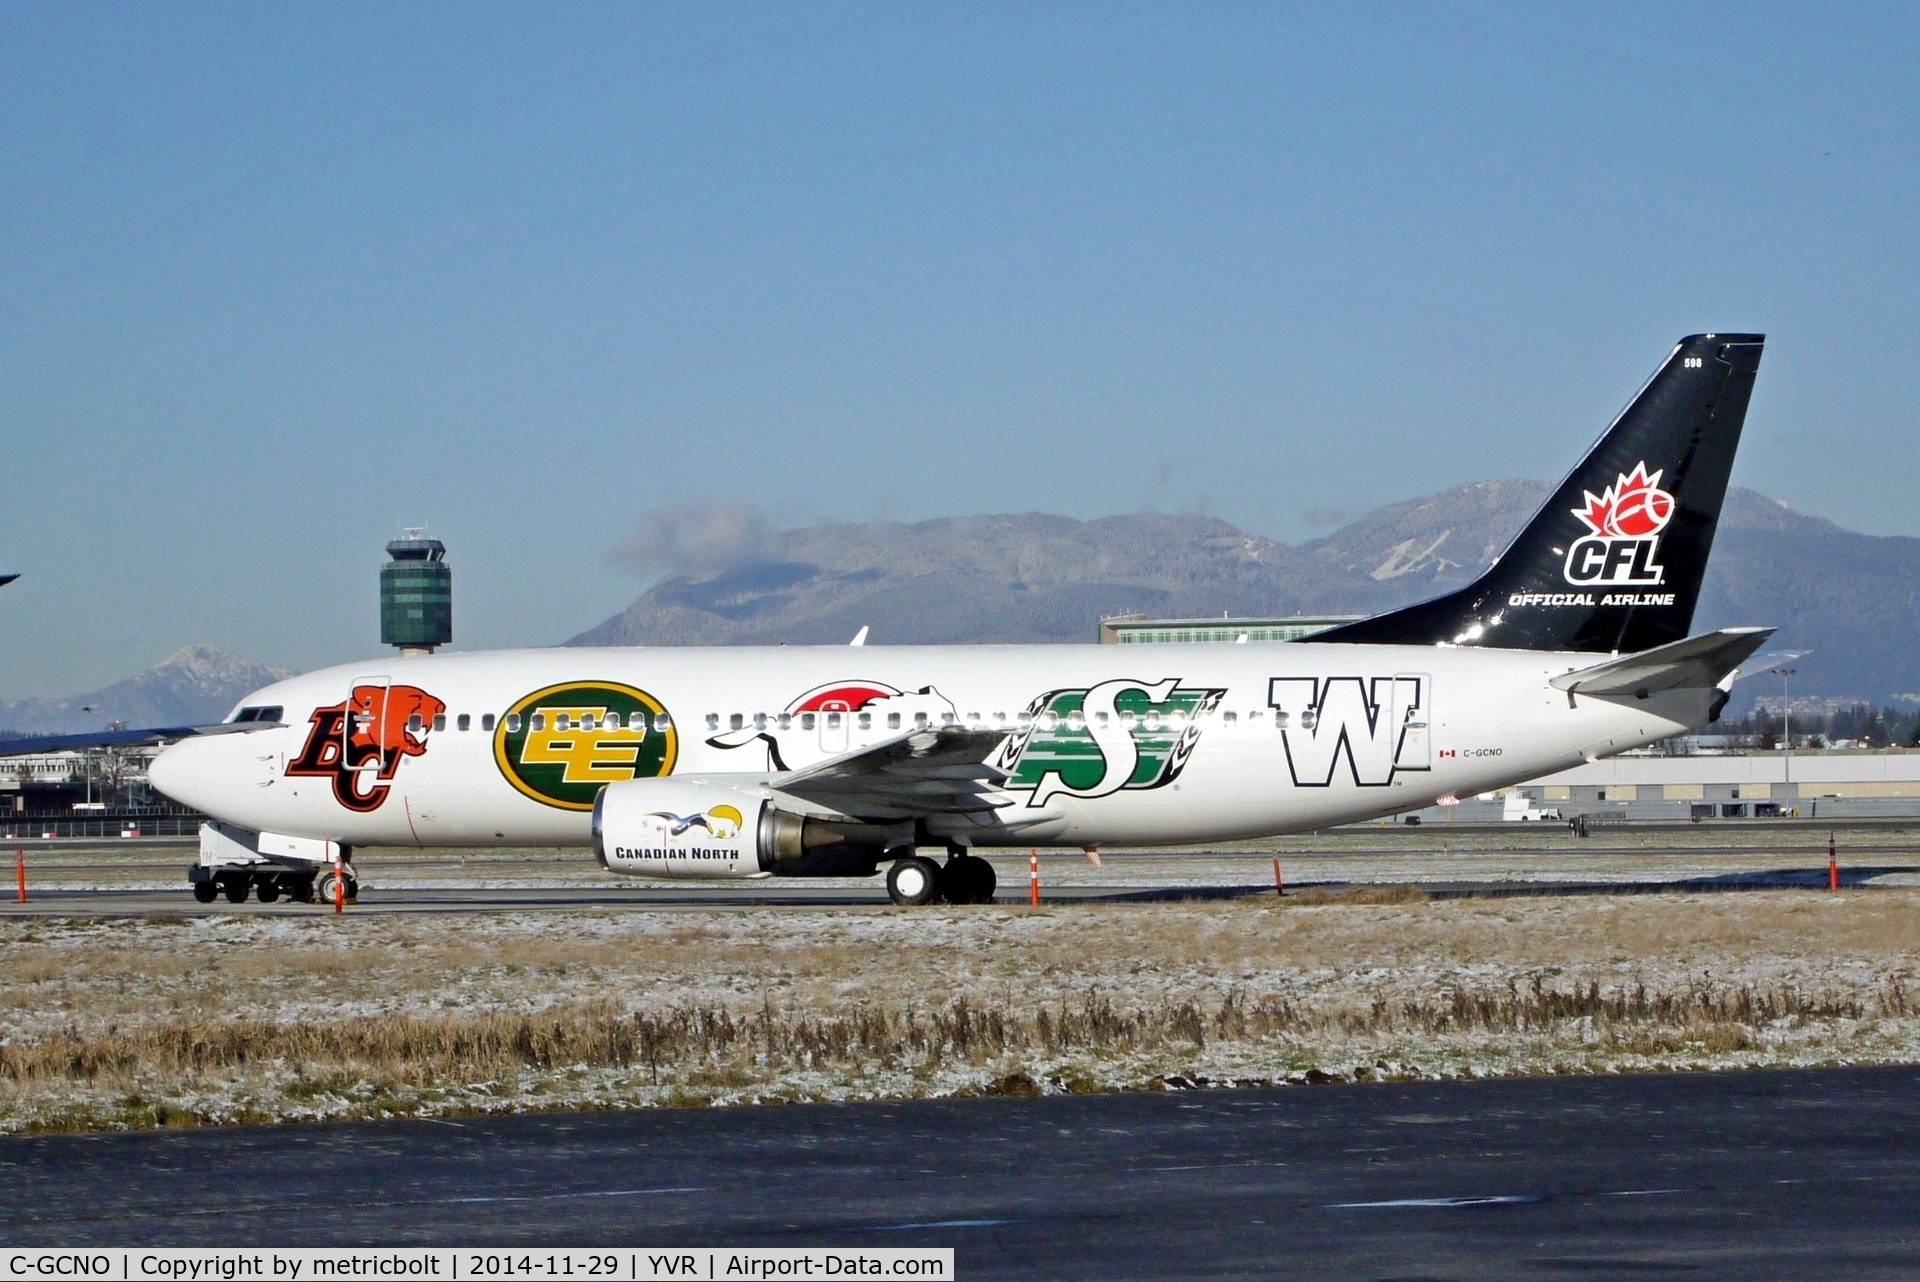 C-GCNO, 1999 Boeing 737-36N C/N 28596, In Vancouver for the Grey Cup.